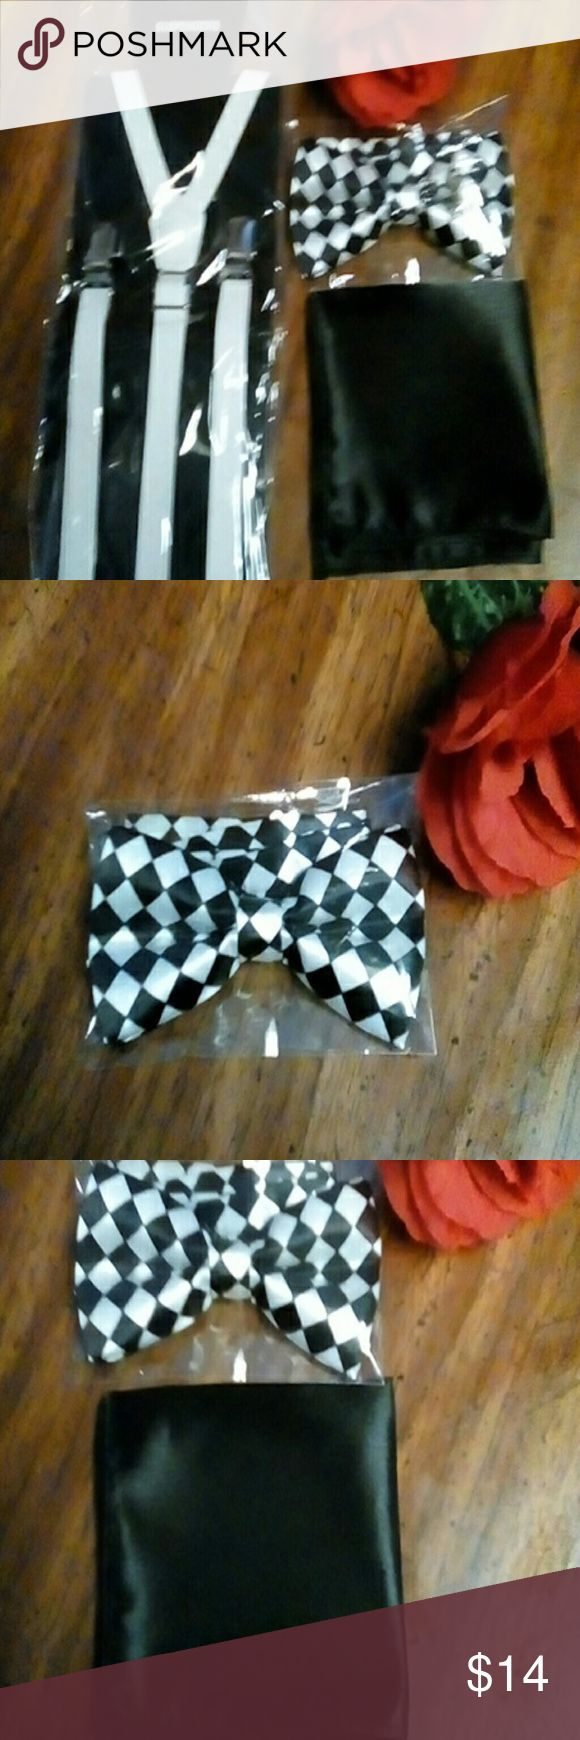 3-piece adult unisex suspender set Black and white three-piece unisex bow tie and suspenders set . black and white checkered bow tie, faux leather thin suspenders, and a black hanky. $14. New. Accessories Suspenders